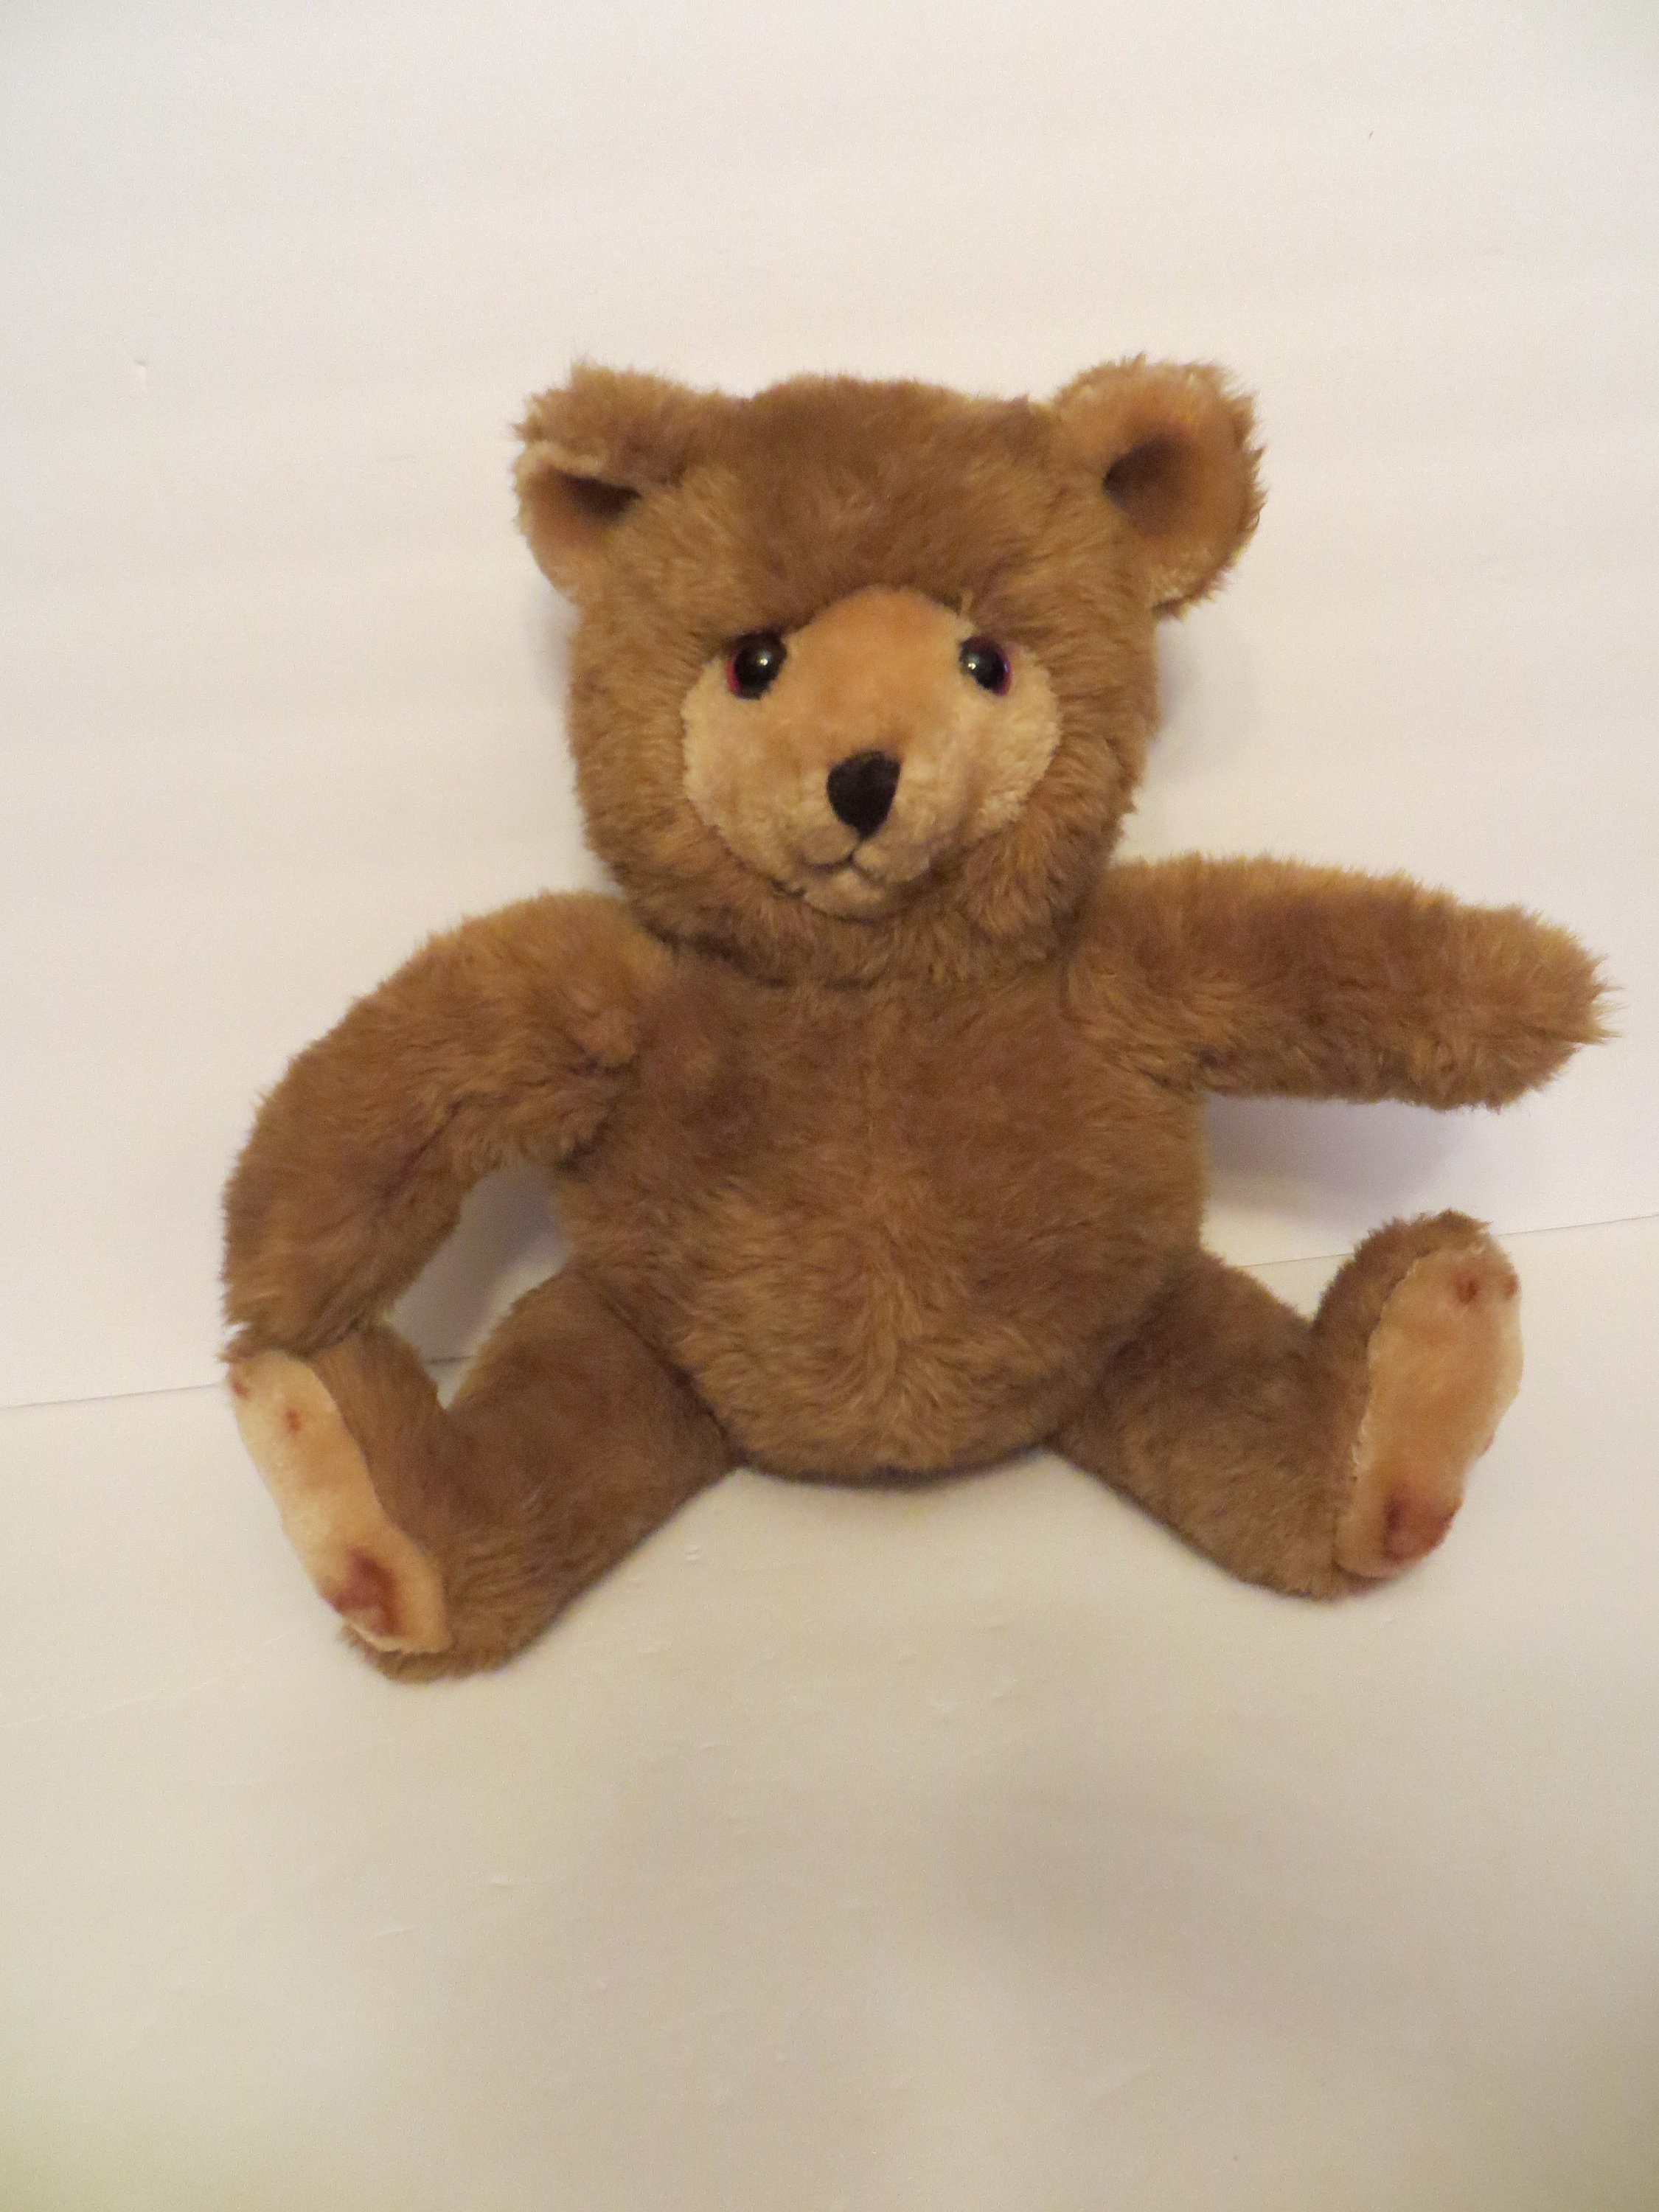 Vintage GUND Teddy Bear w No Name 1987 JC Penney Collection Golden Brown w Tags